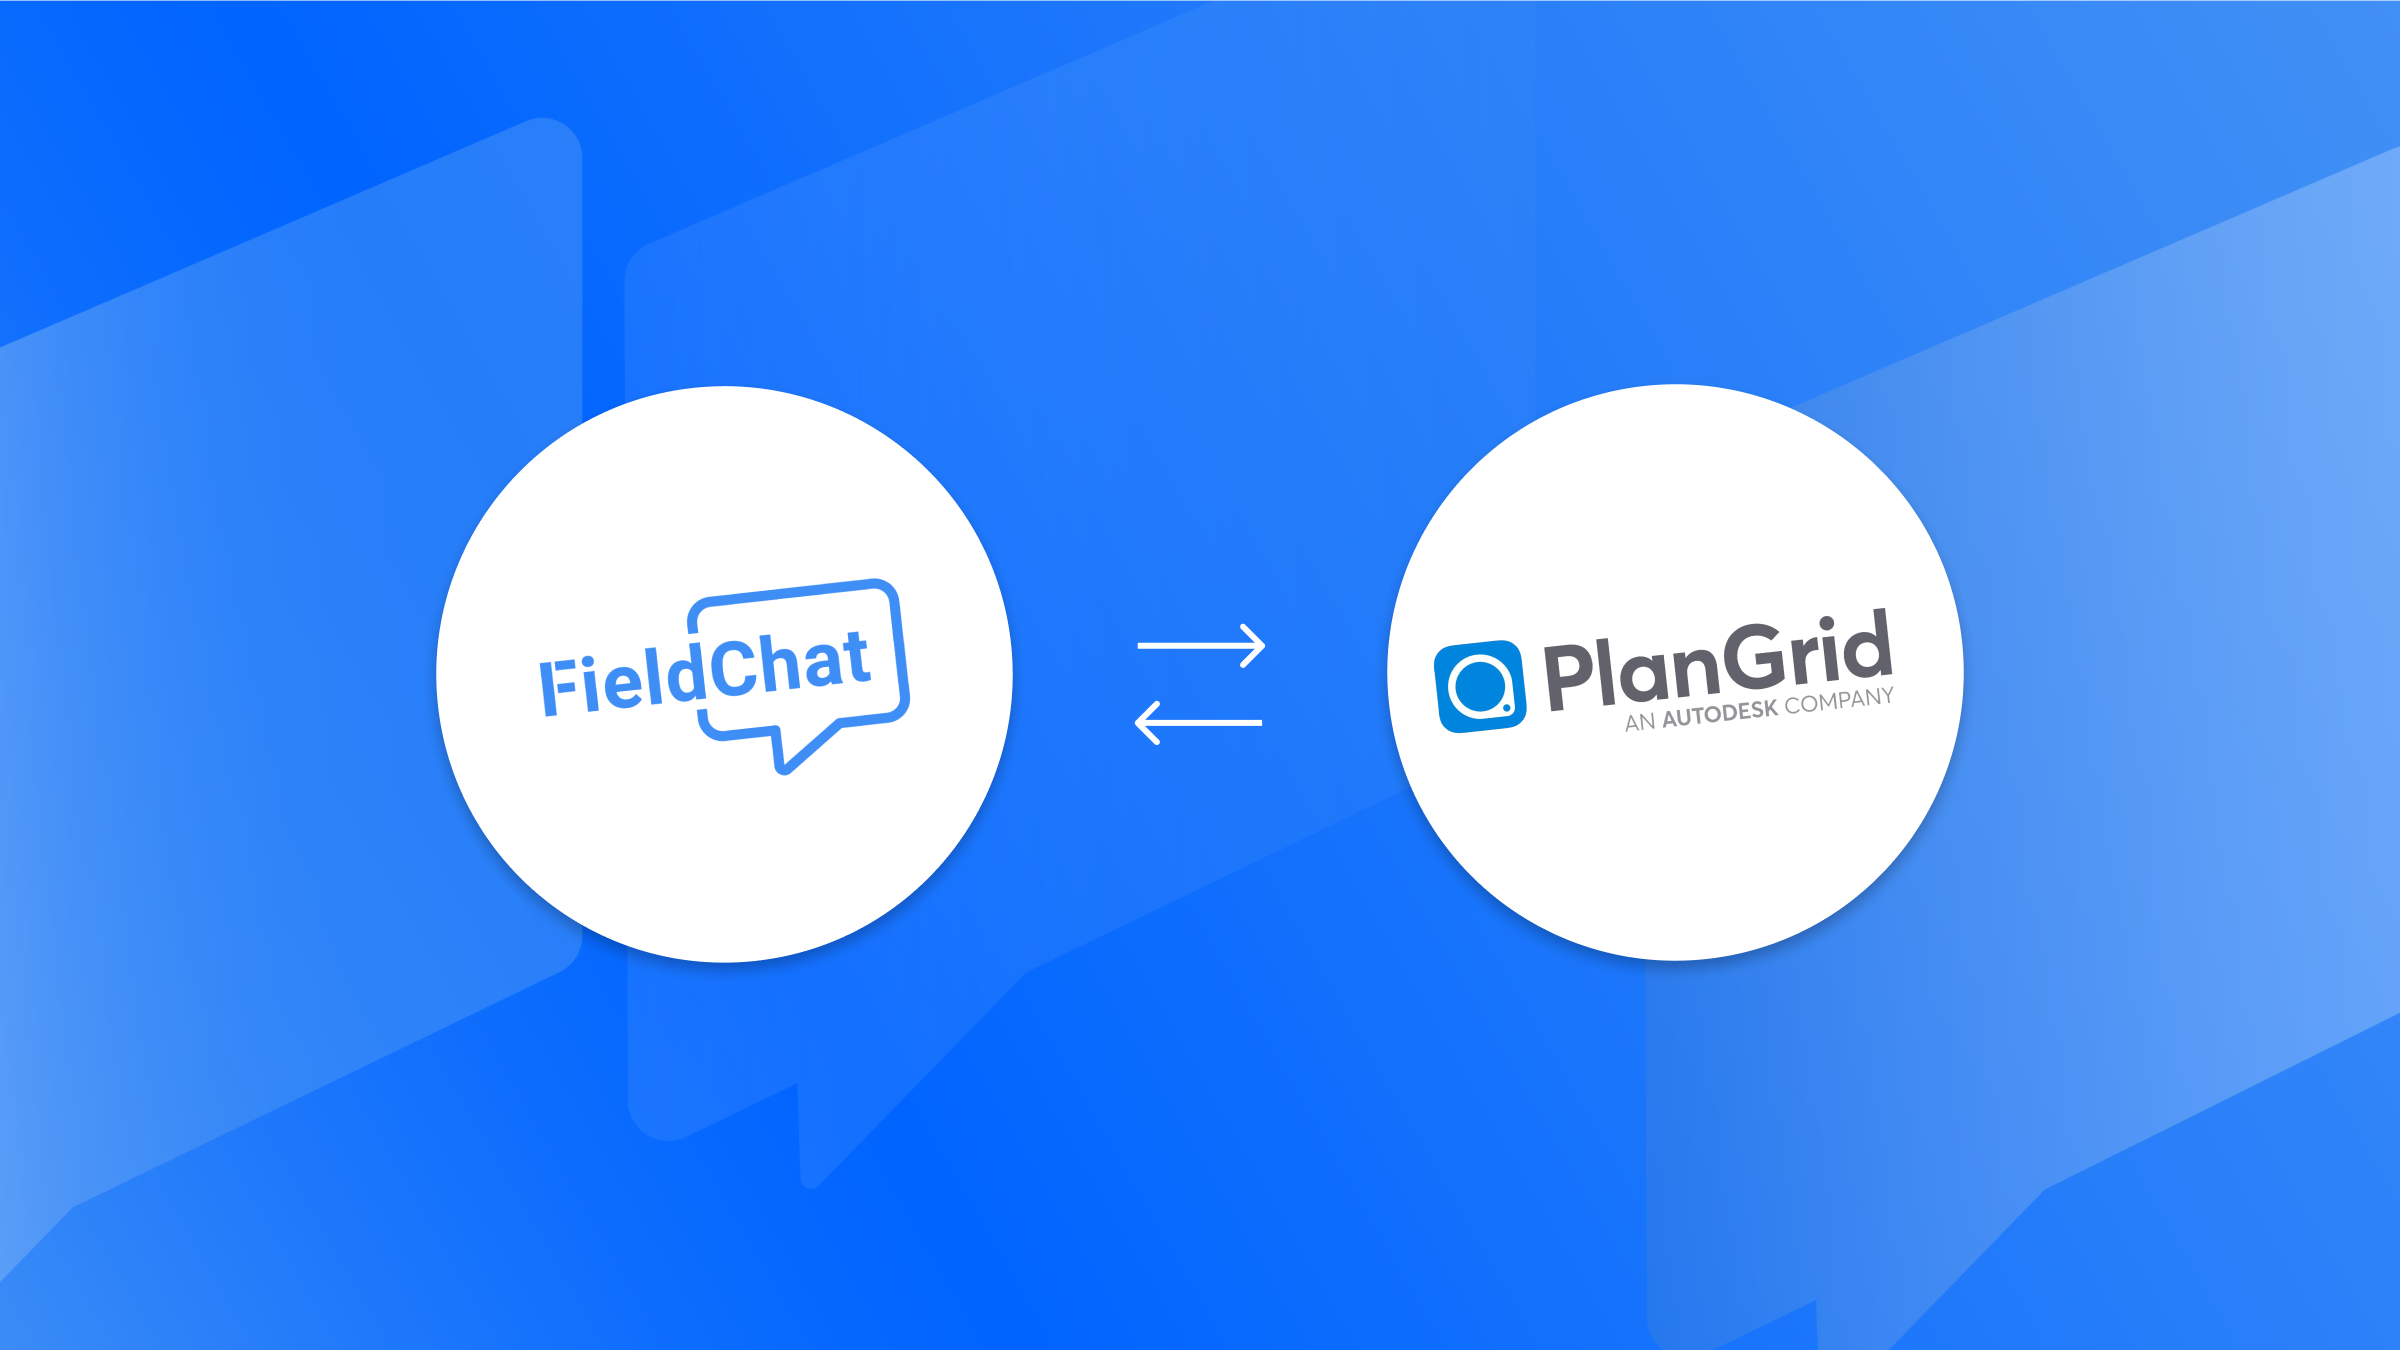 Product Update: FieldChat Now Integrates With PlanGrid